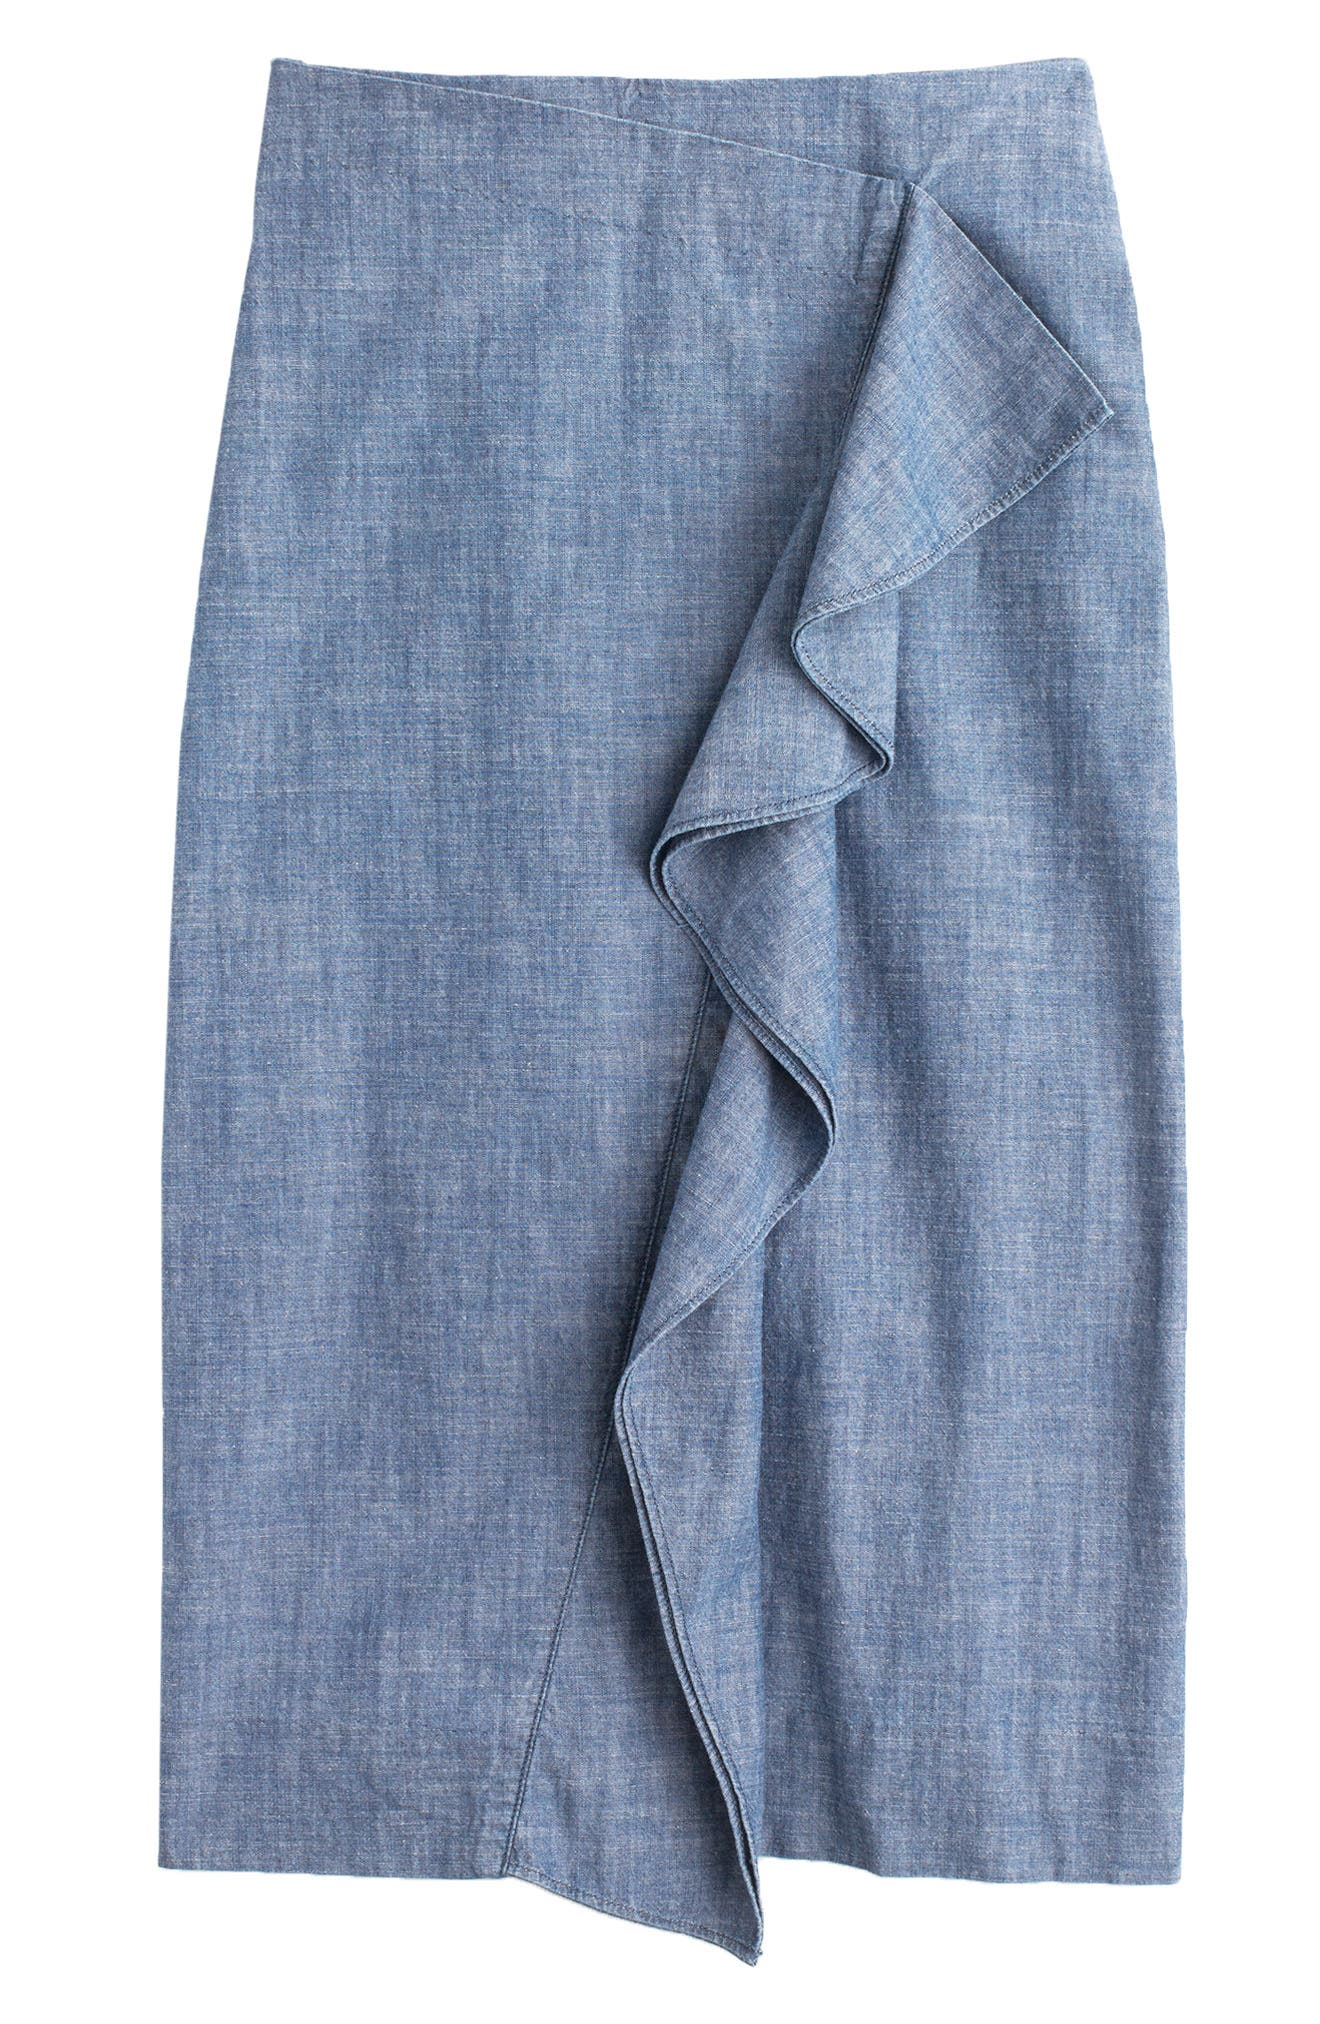 Alternate Image 4  - J.Crew Chambray Ruffle Skirt